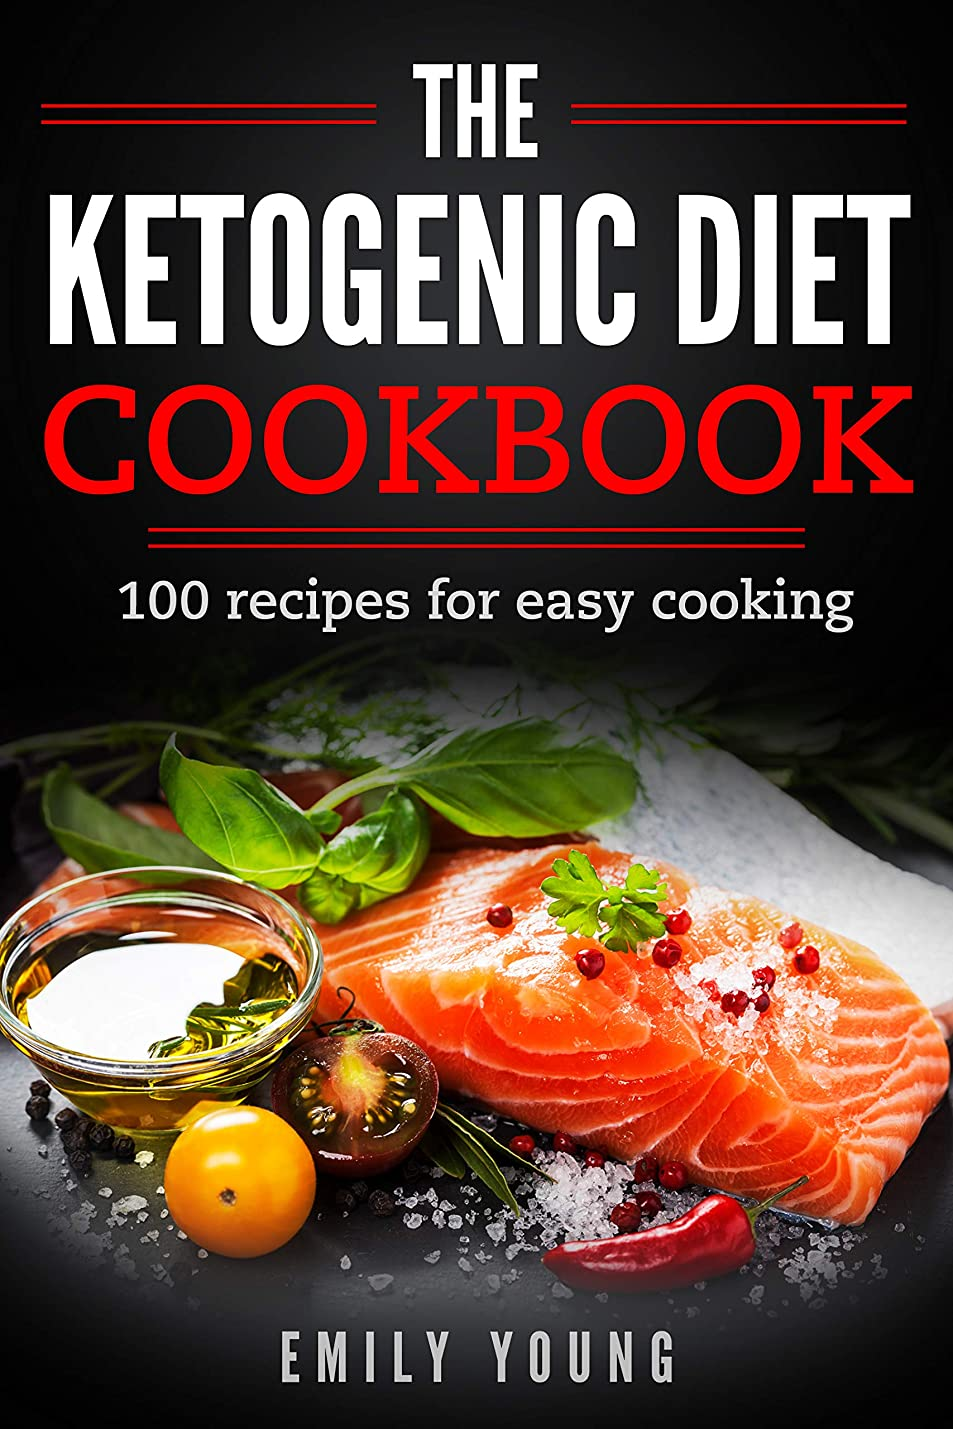 Ketogenic diet cookbook:  100 recipes for easy cooking.: keto diet, keto, keto diet menu, keto diet recipes, keto foods, keto meals, ketogenic diet menu, keto diet, food list (English Edition)